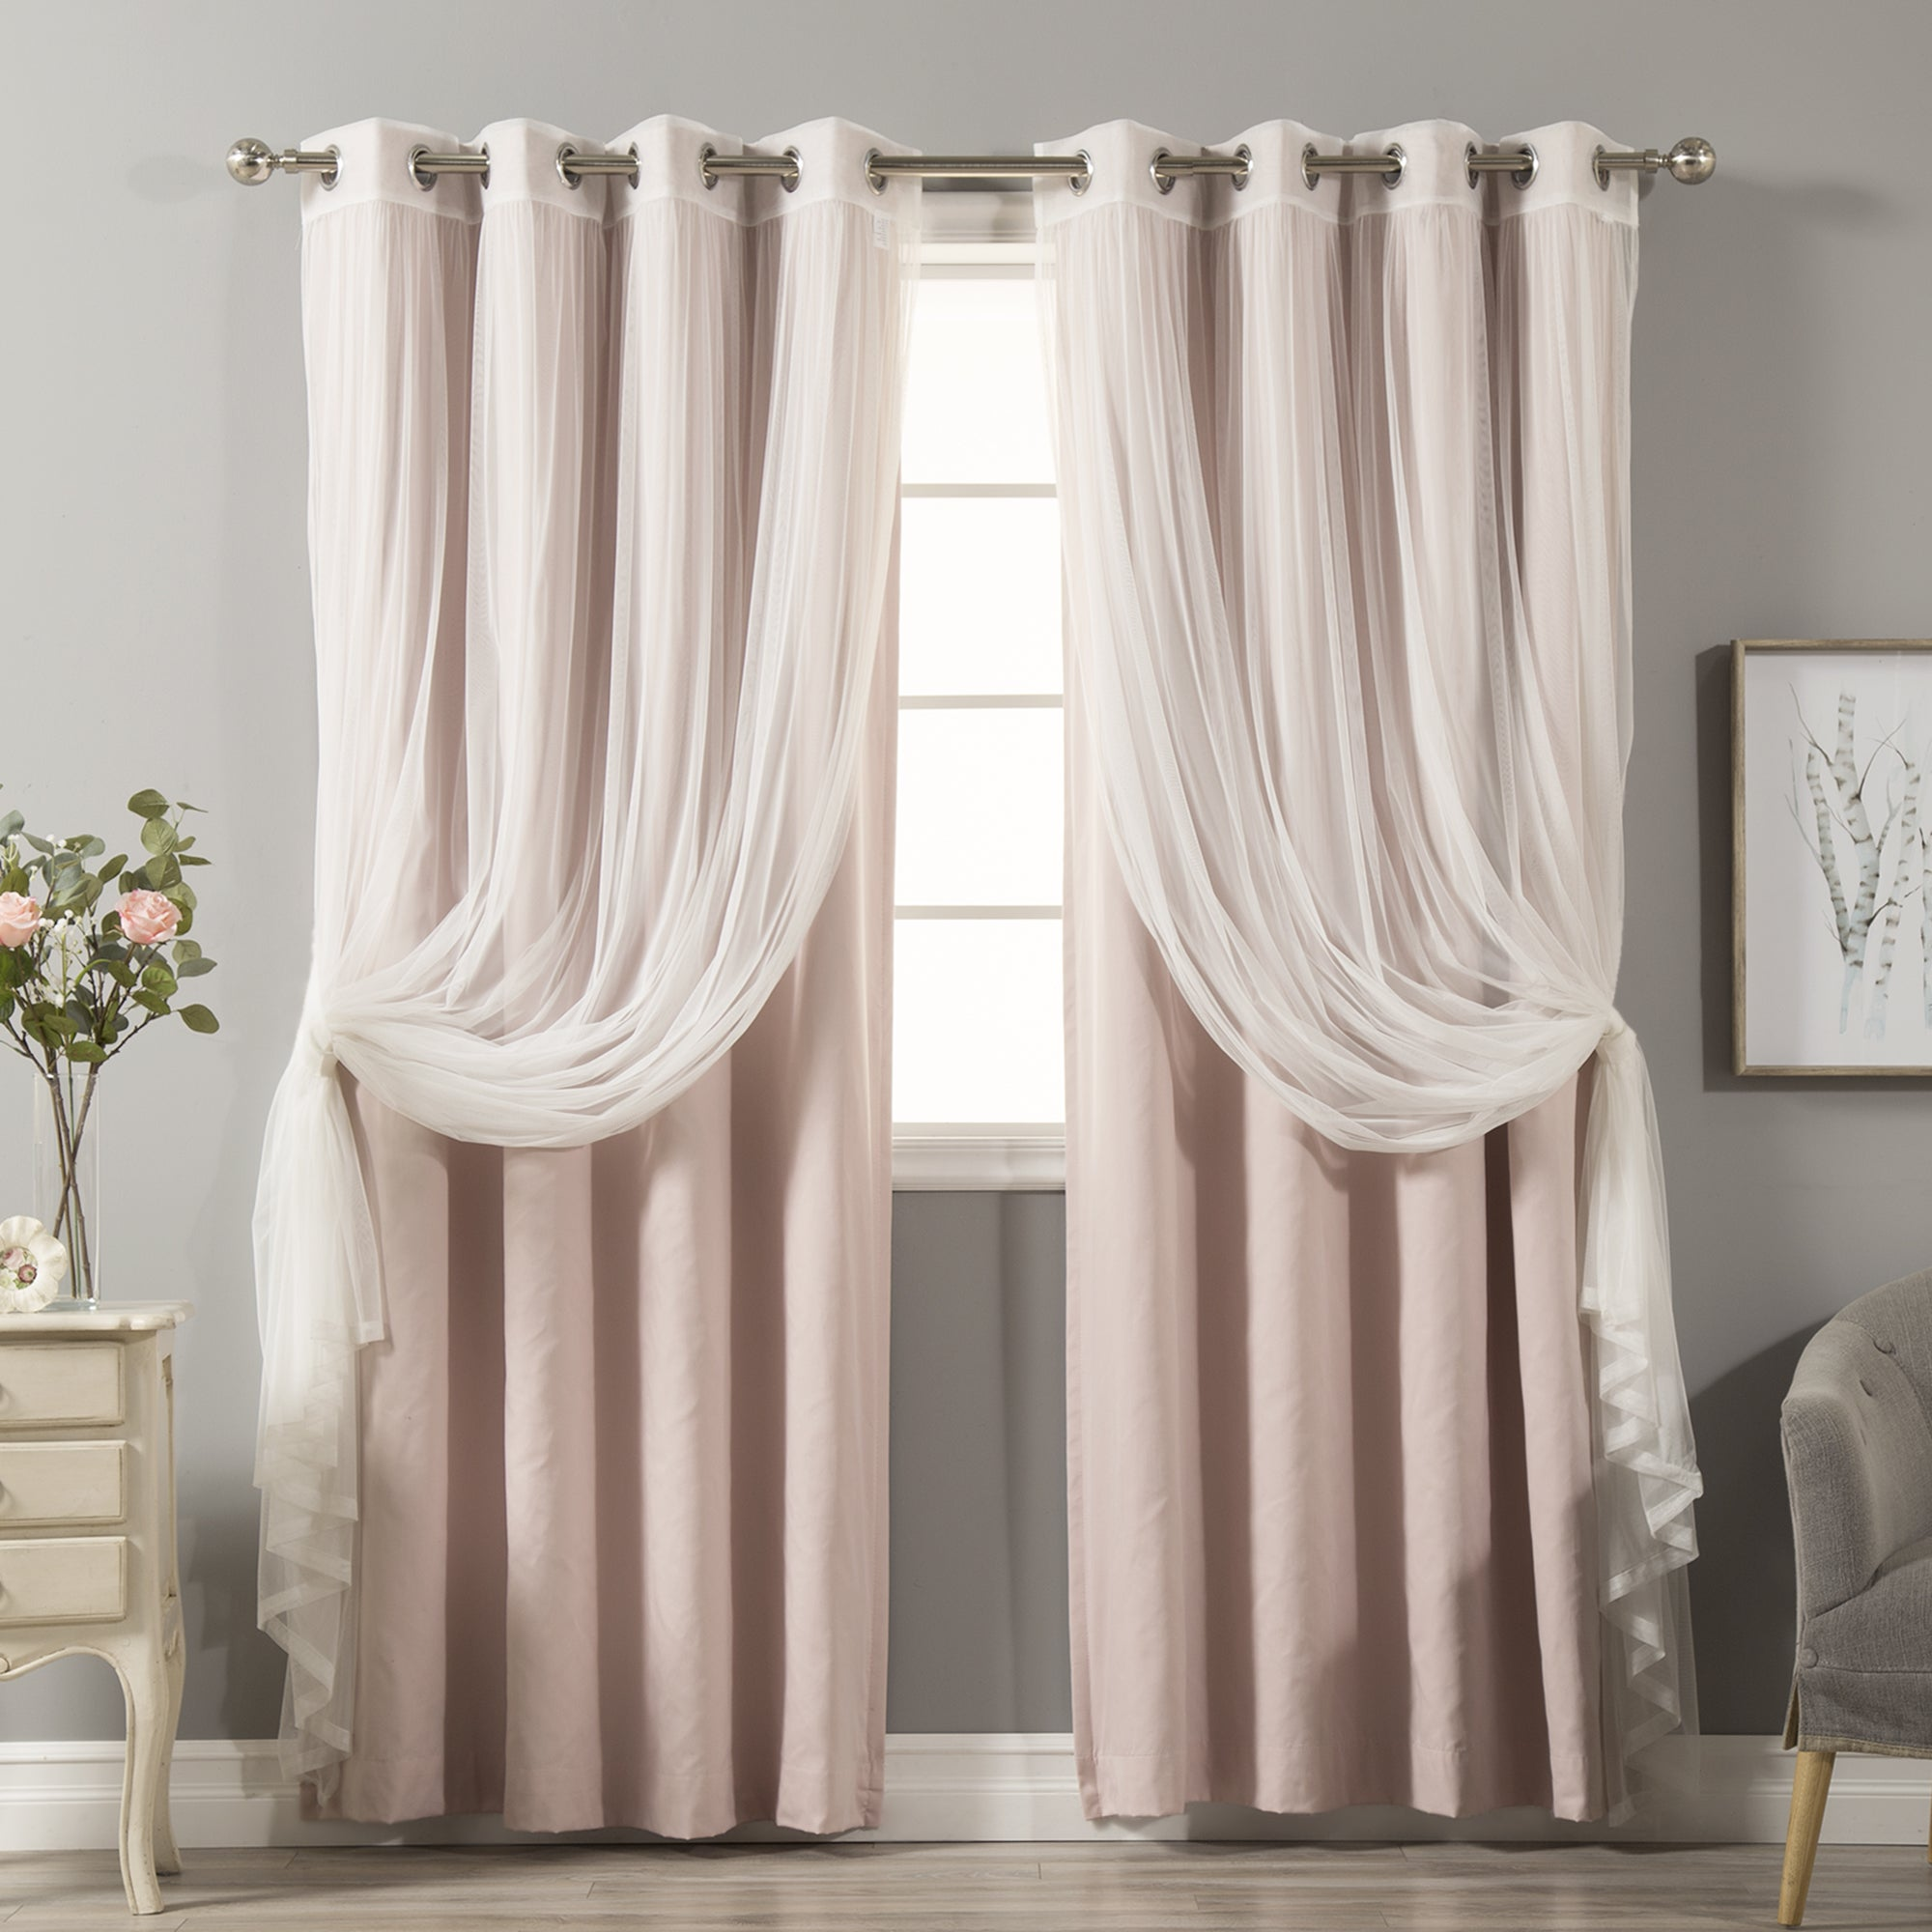 basketweave curtain pair room linen grom curtains grommet ivory default blackout darkening mod look